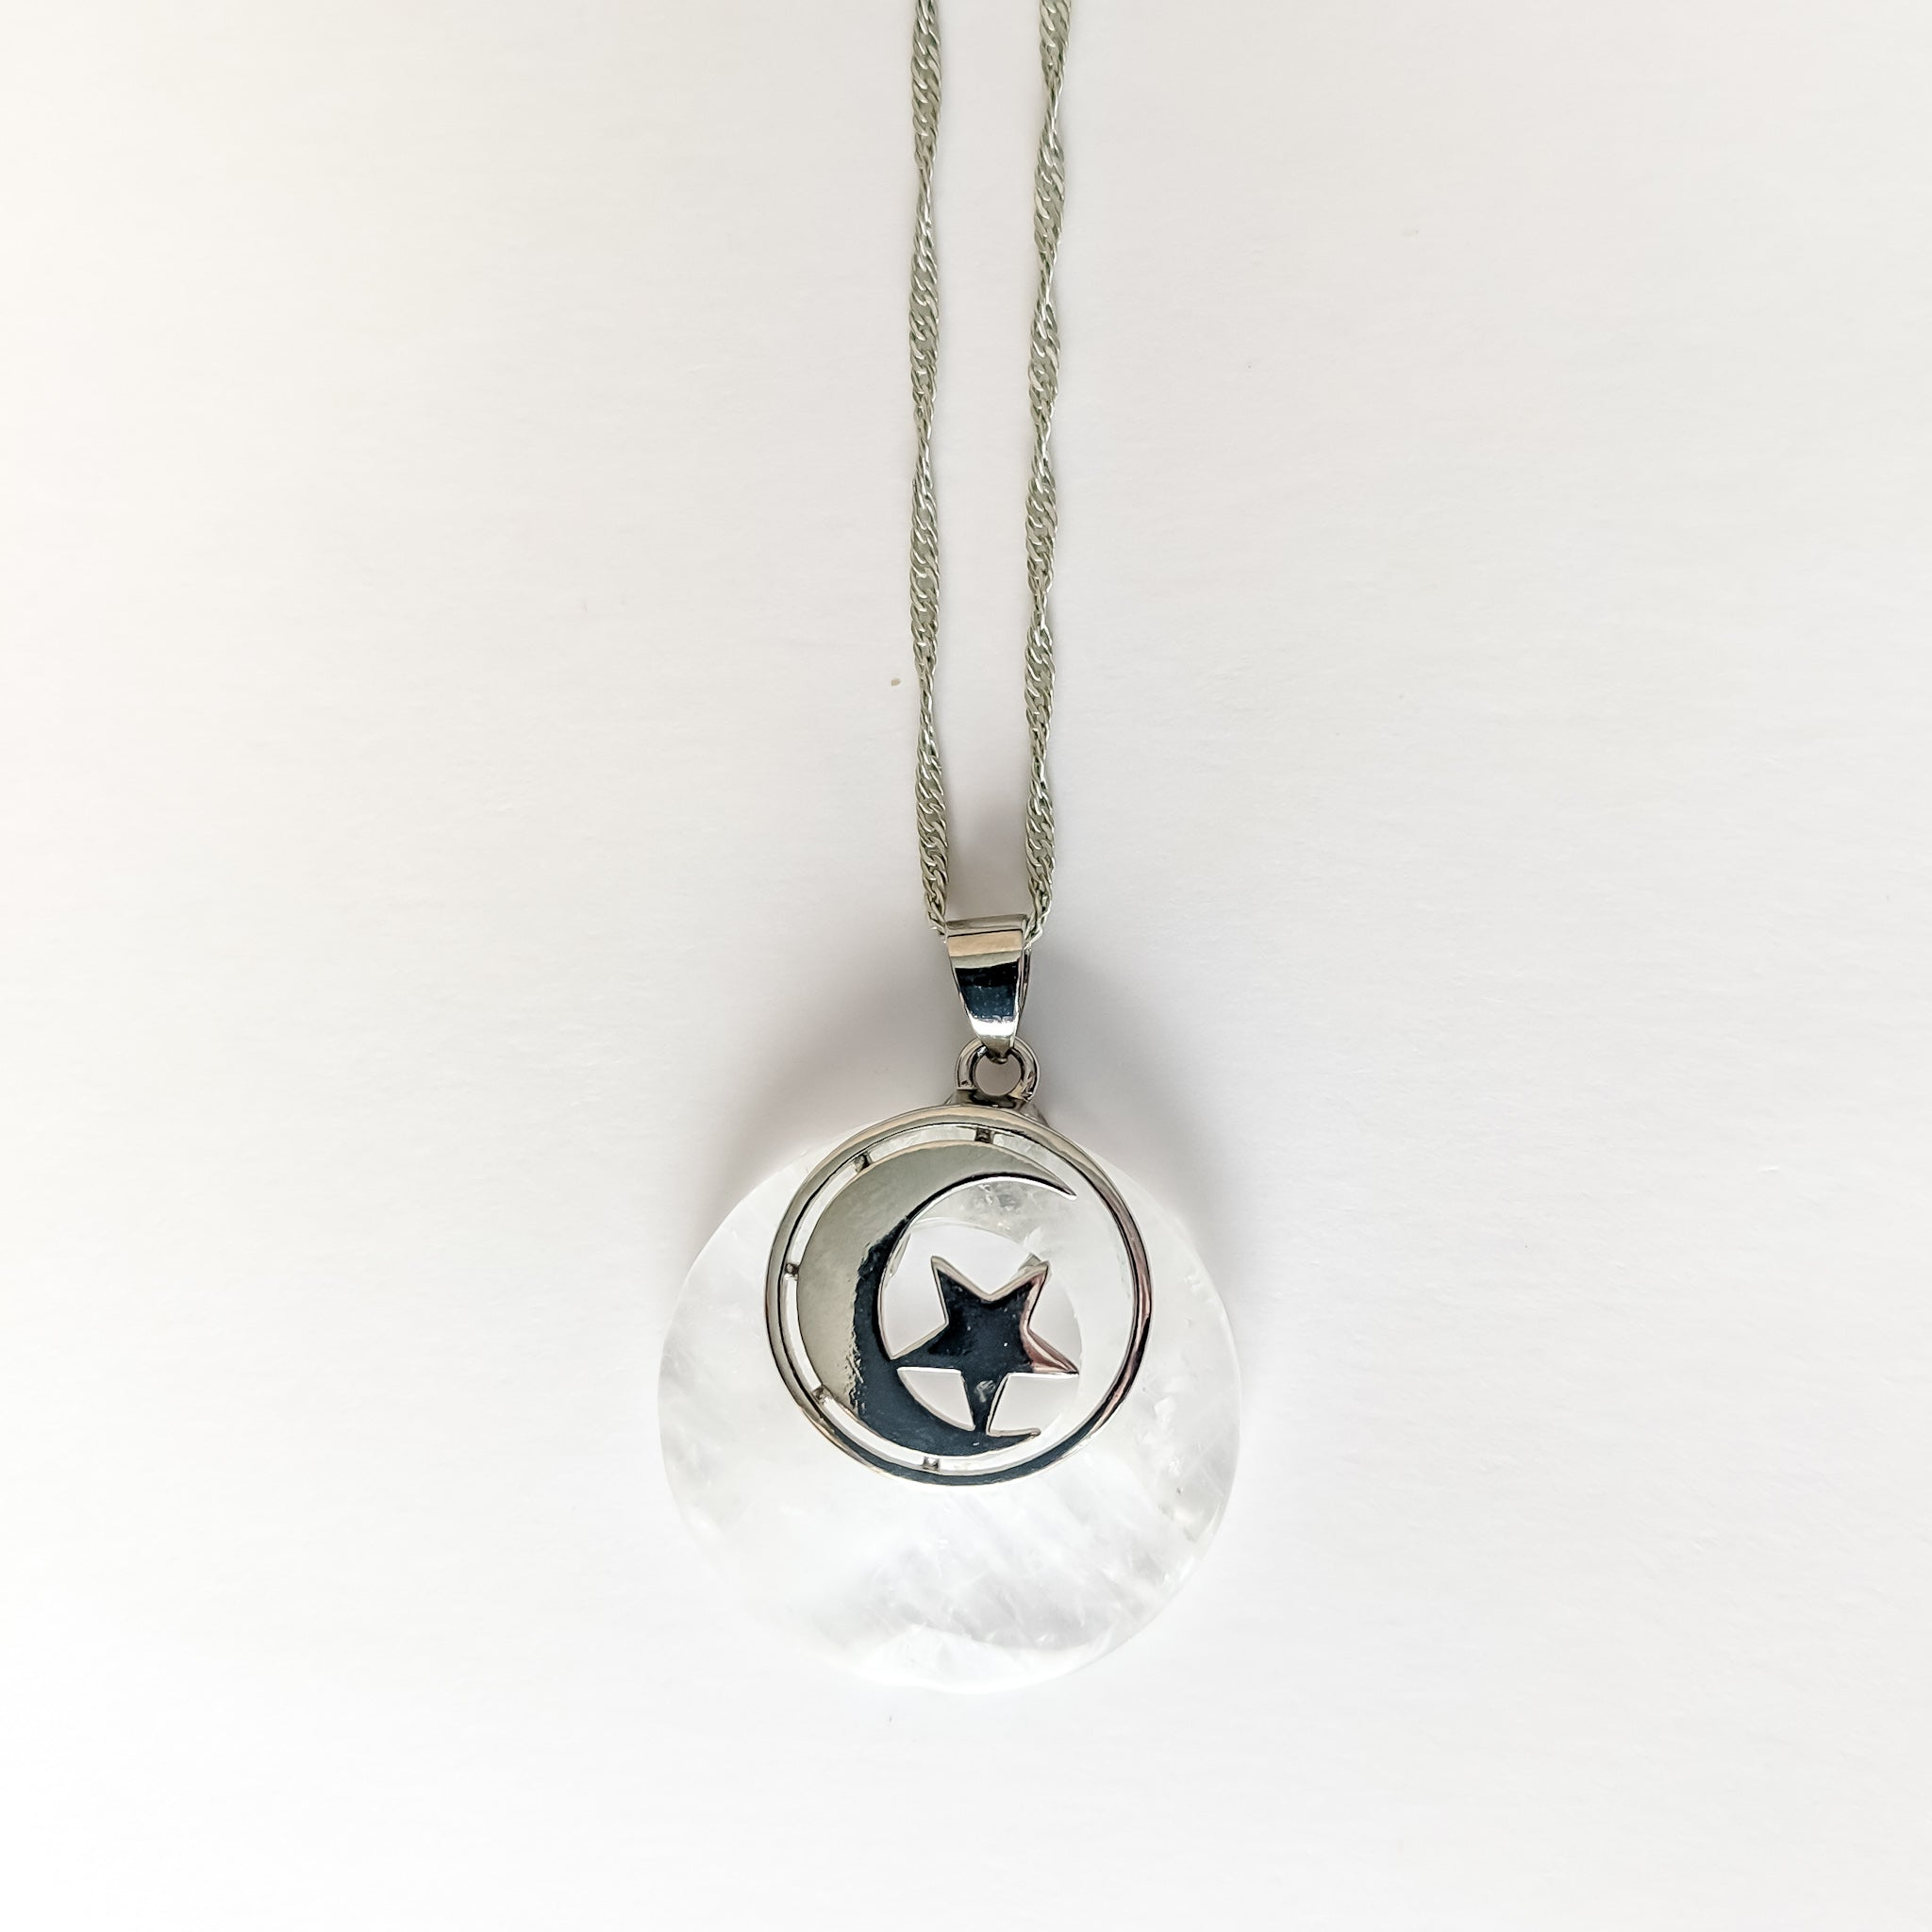 Clear Quartz Crescent Moon Pendant with Sterling Silver Necklace